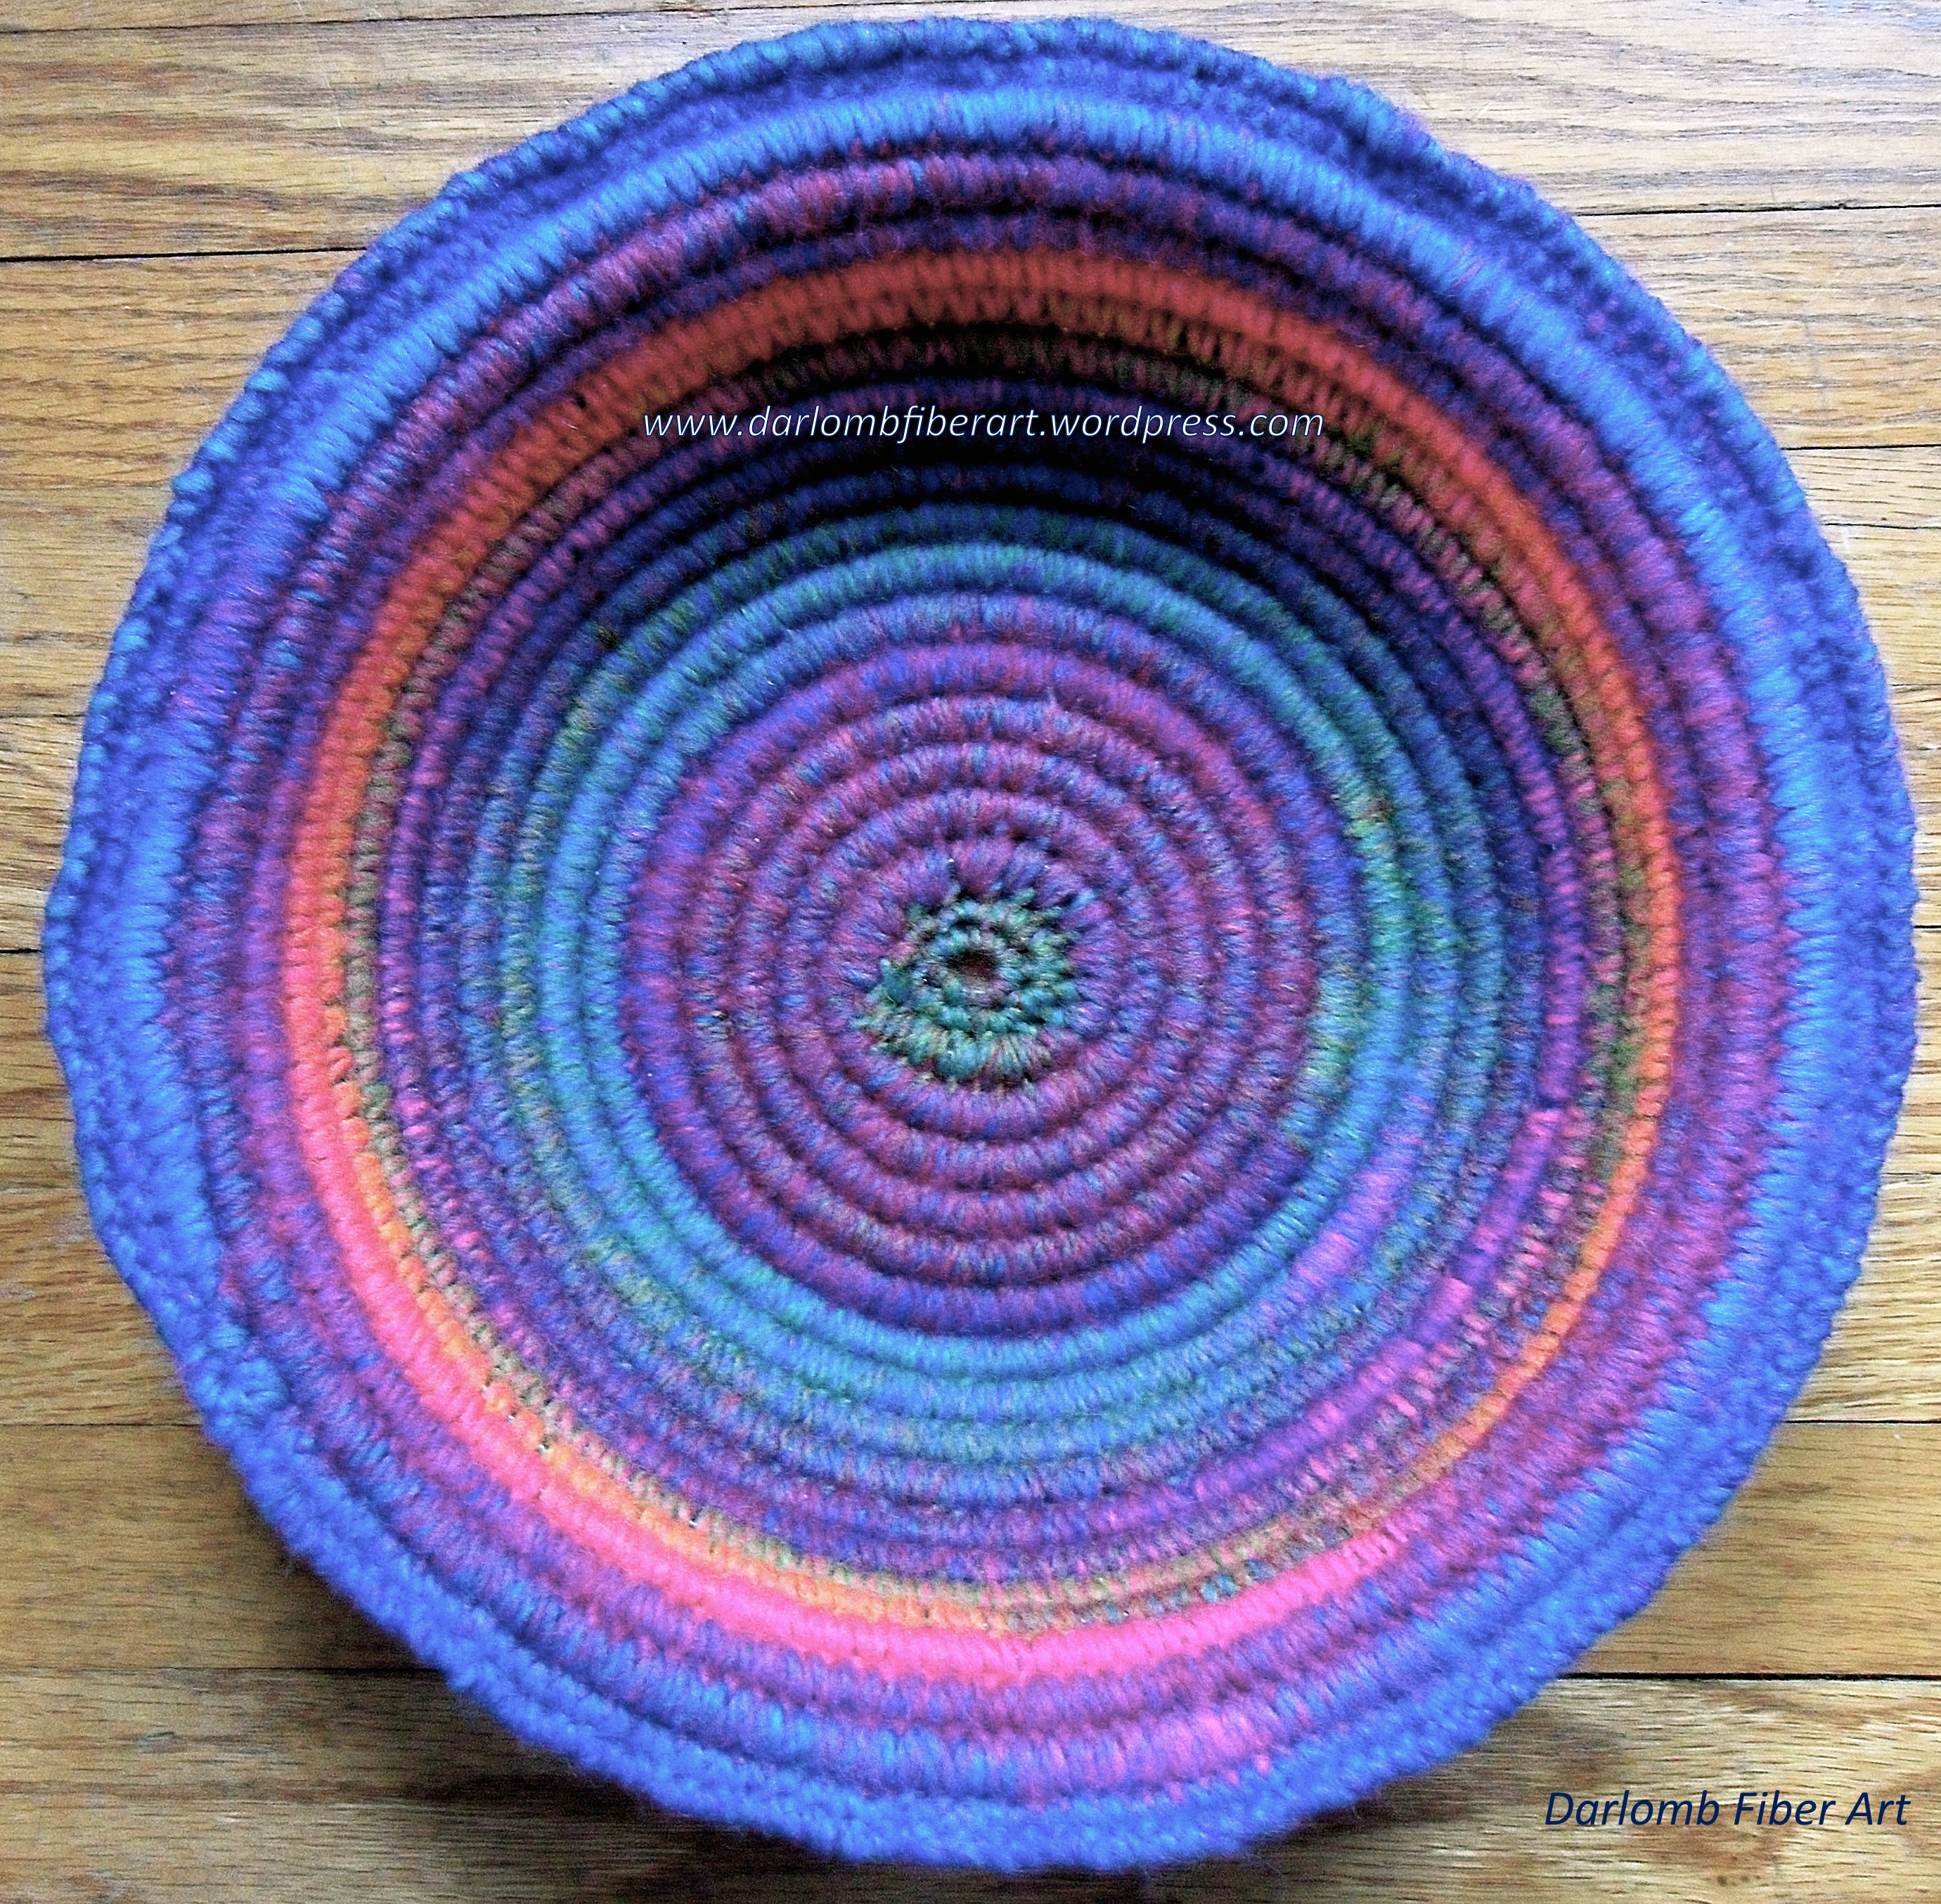 How To Make A Woven Yarn Basket : Crochet coiled basket guidelines ideas fiber art